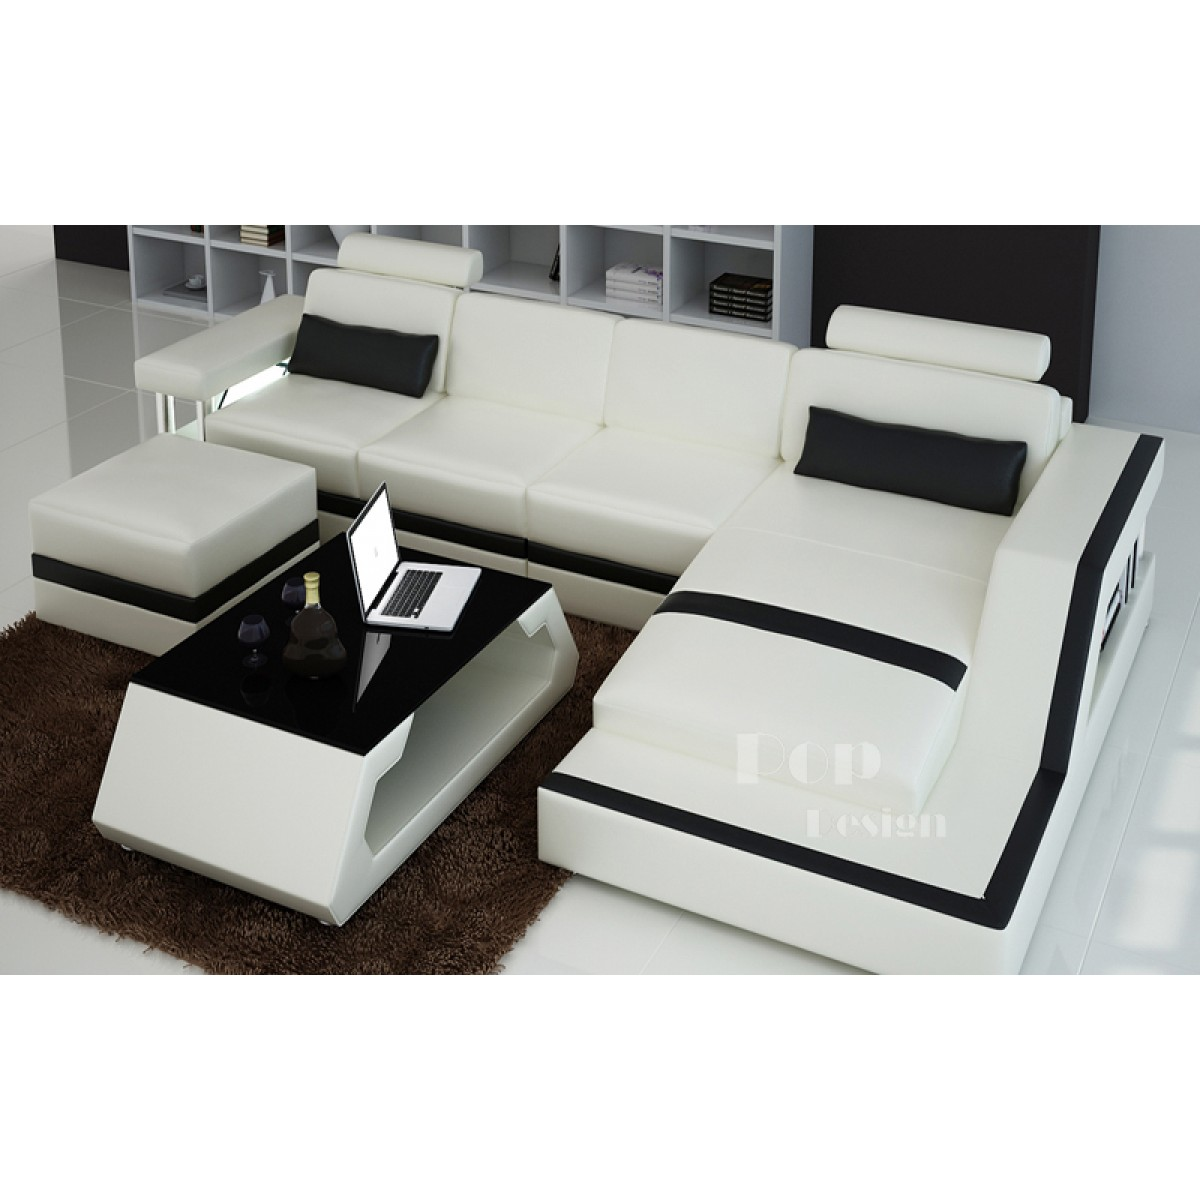 petit canap d angle cuir id es de d coration int rieure french decor. Black Bedroom Furniture Sets. Home Design Ideas